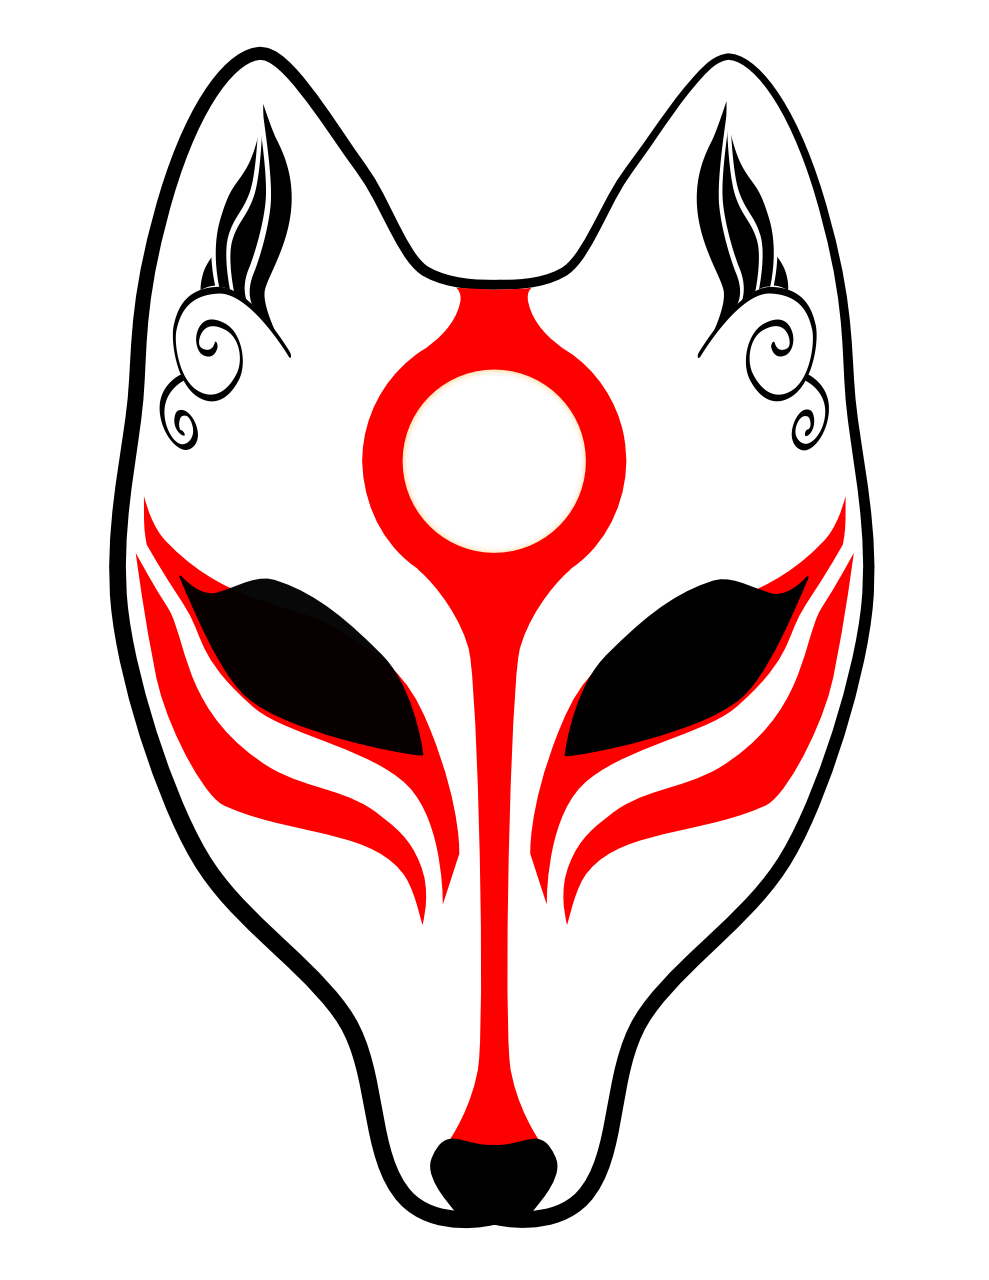 Kitsune mask png. My first illustration with